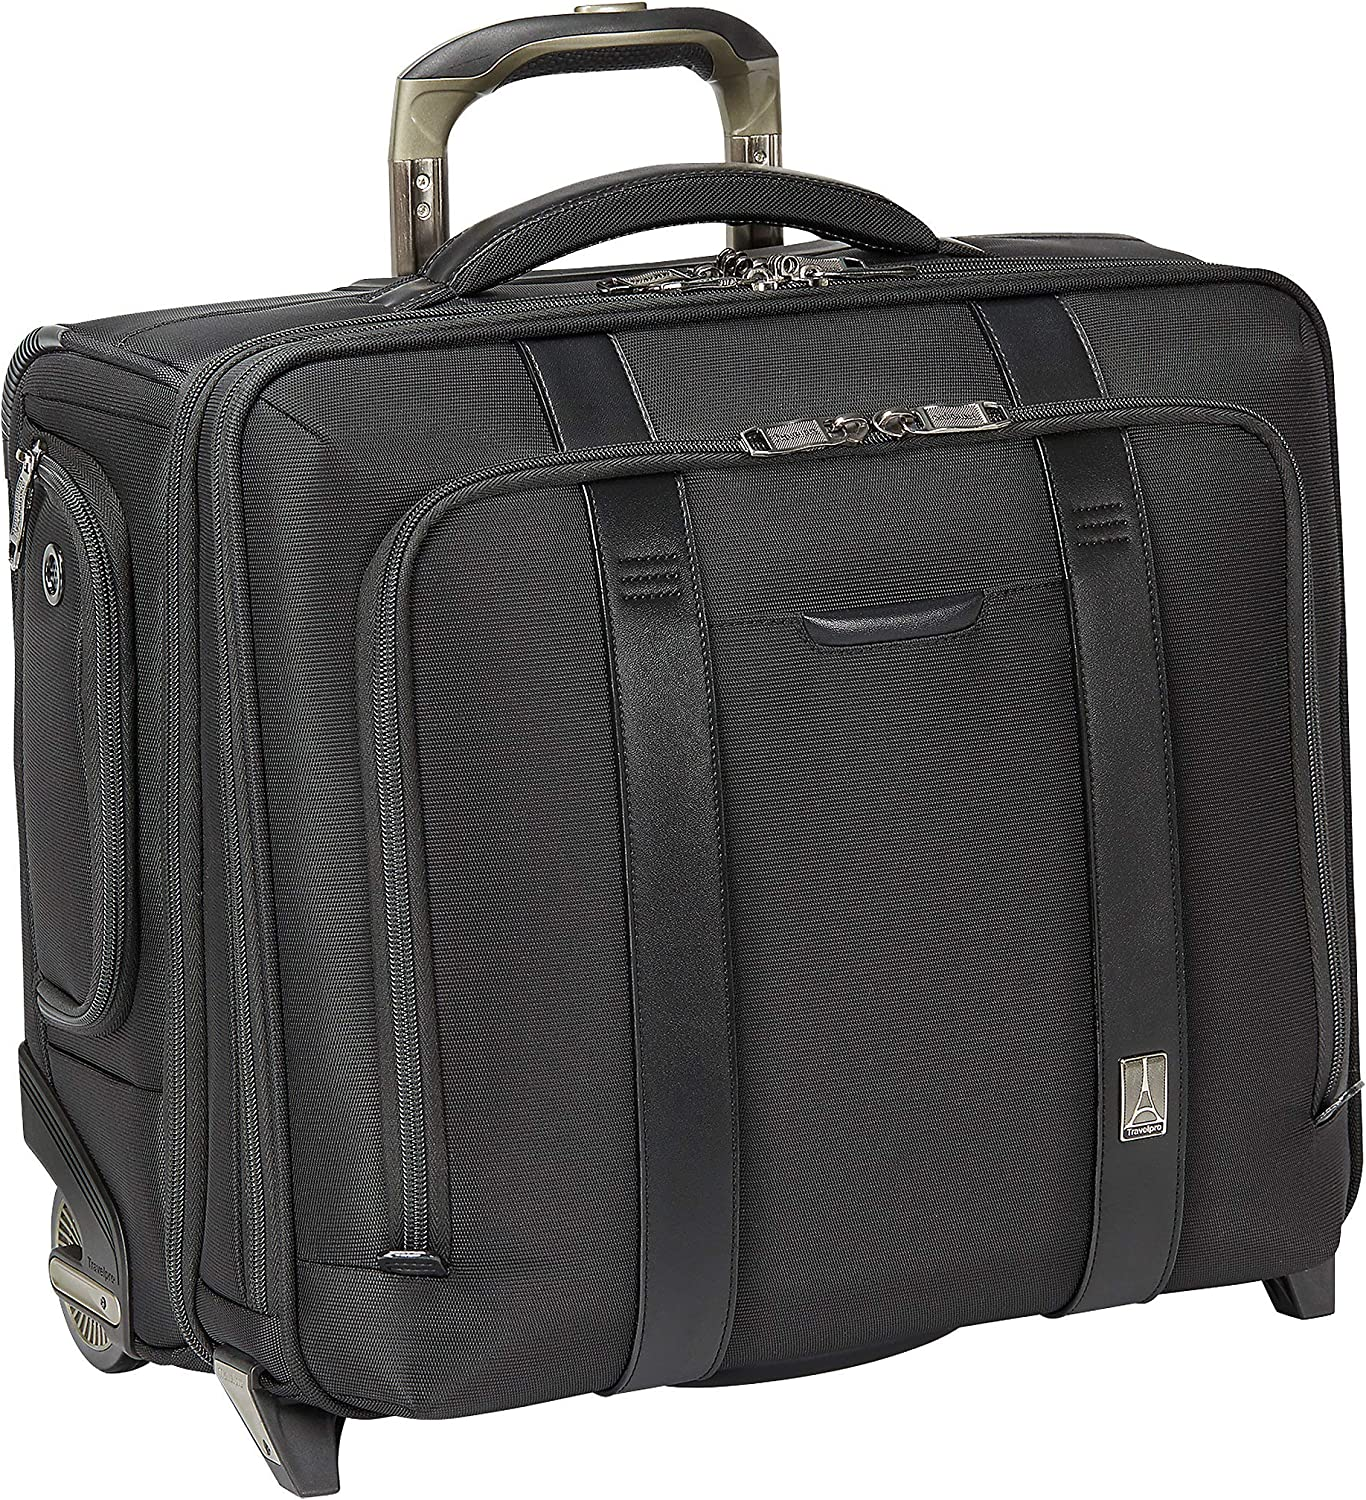 Travelpro Crew Executive Choice 2-Wheeled Brief Bag with USB Port, Black, 17-Inch